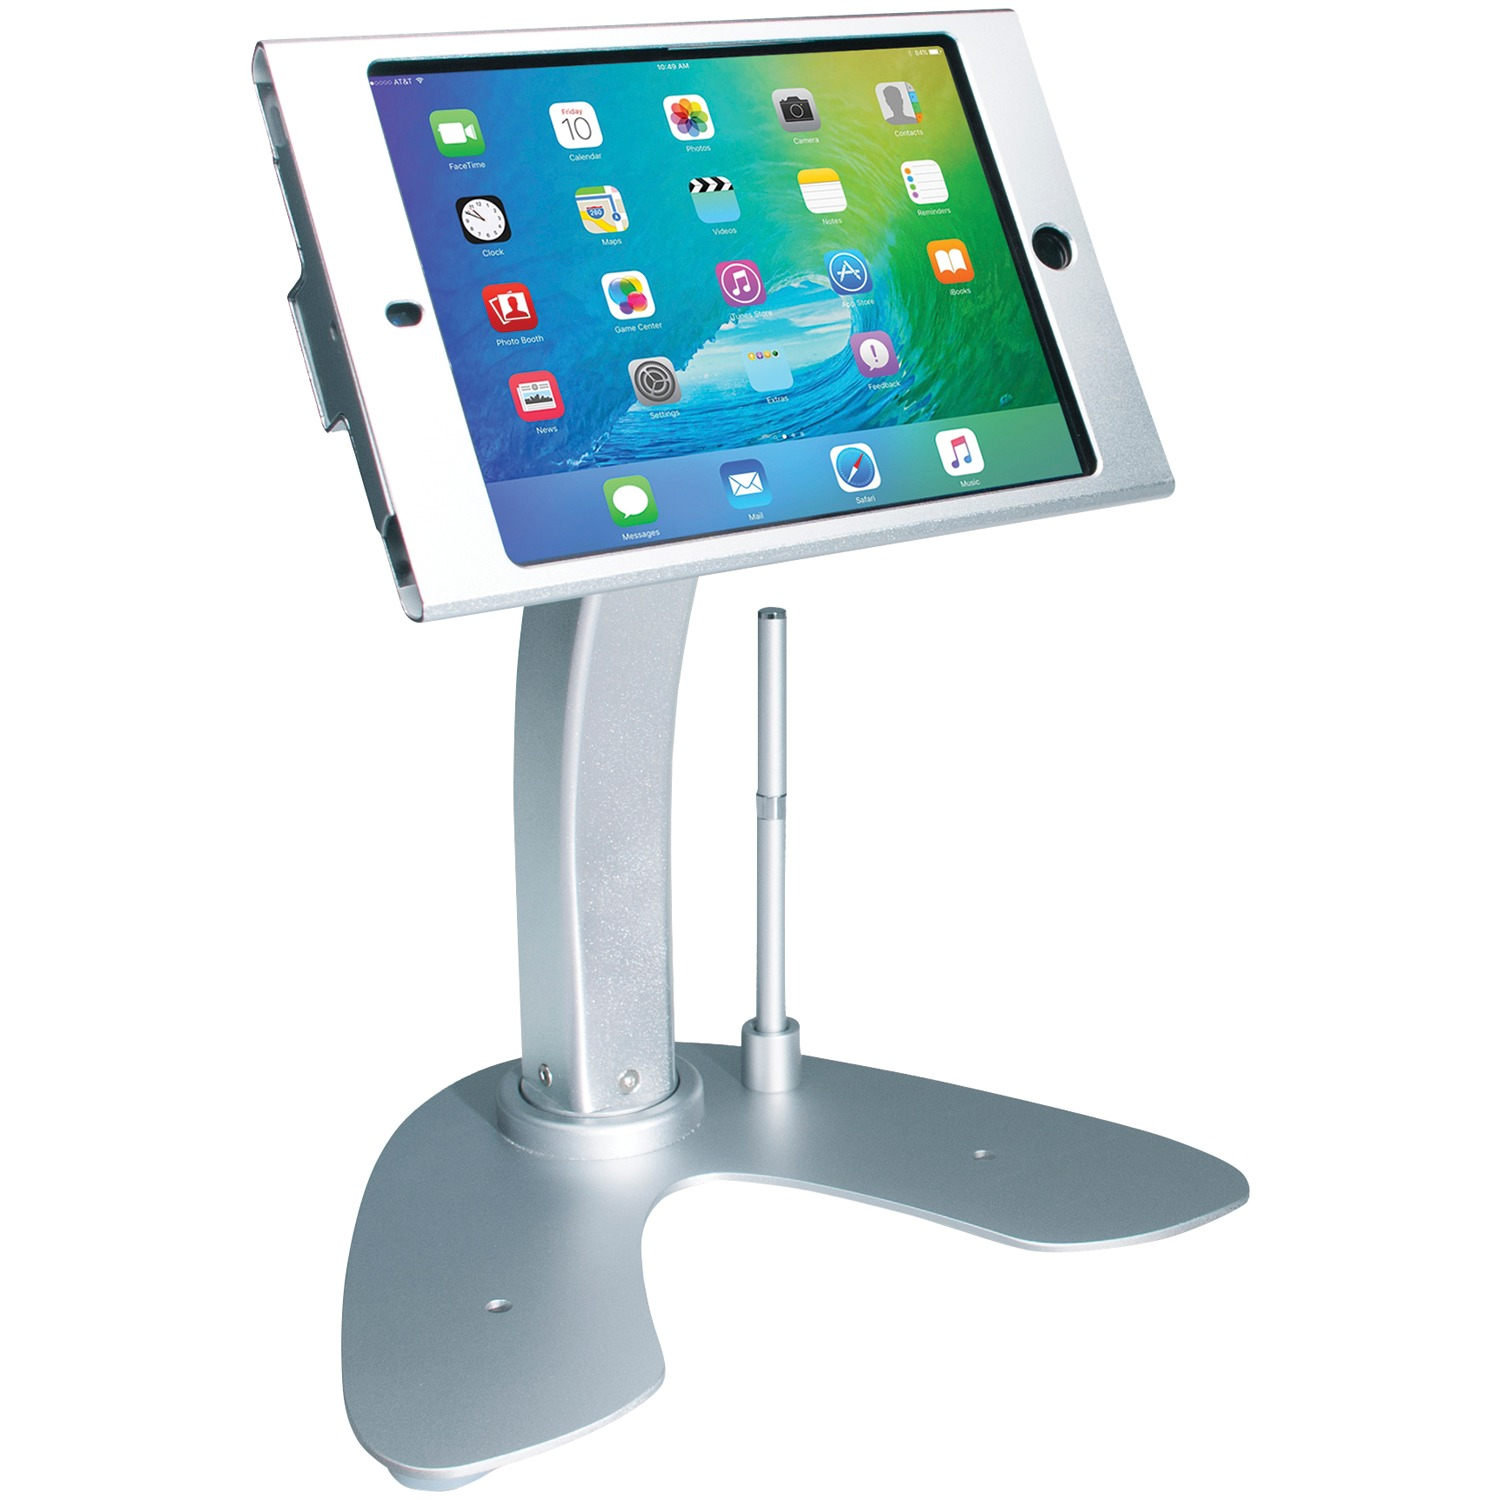 CTA Digital PAD-ASKM Antitheft Security Kiosk Stand for iPad mini Gen 1–4